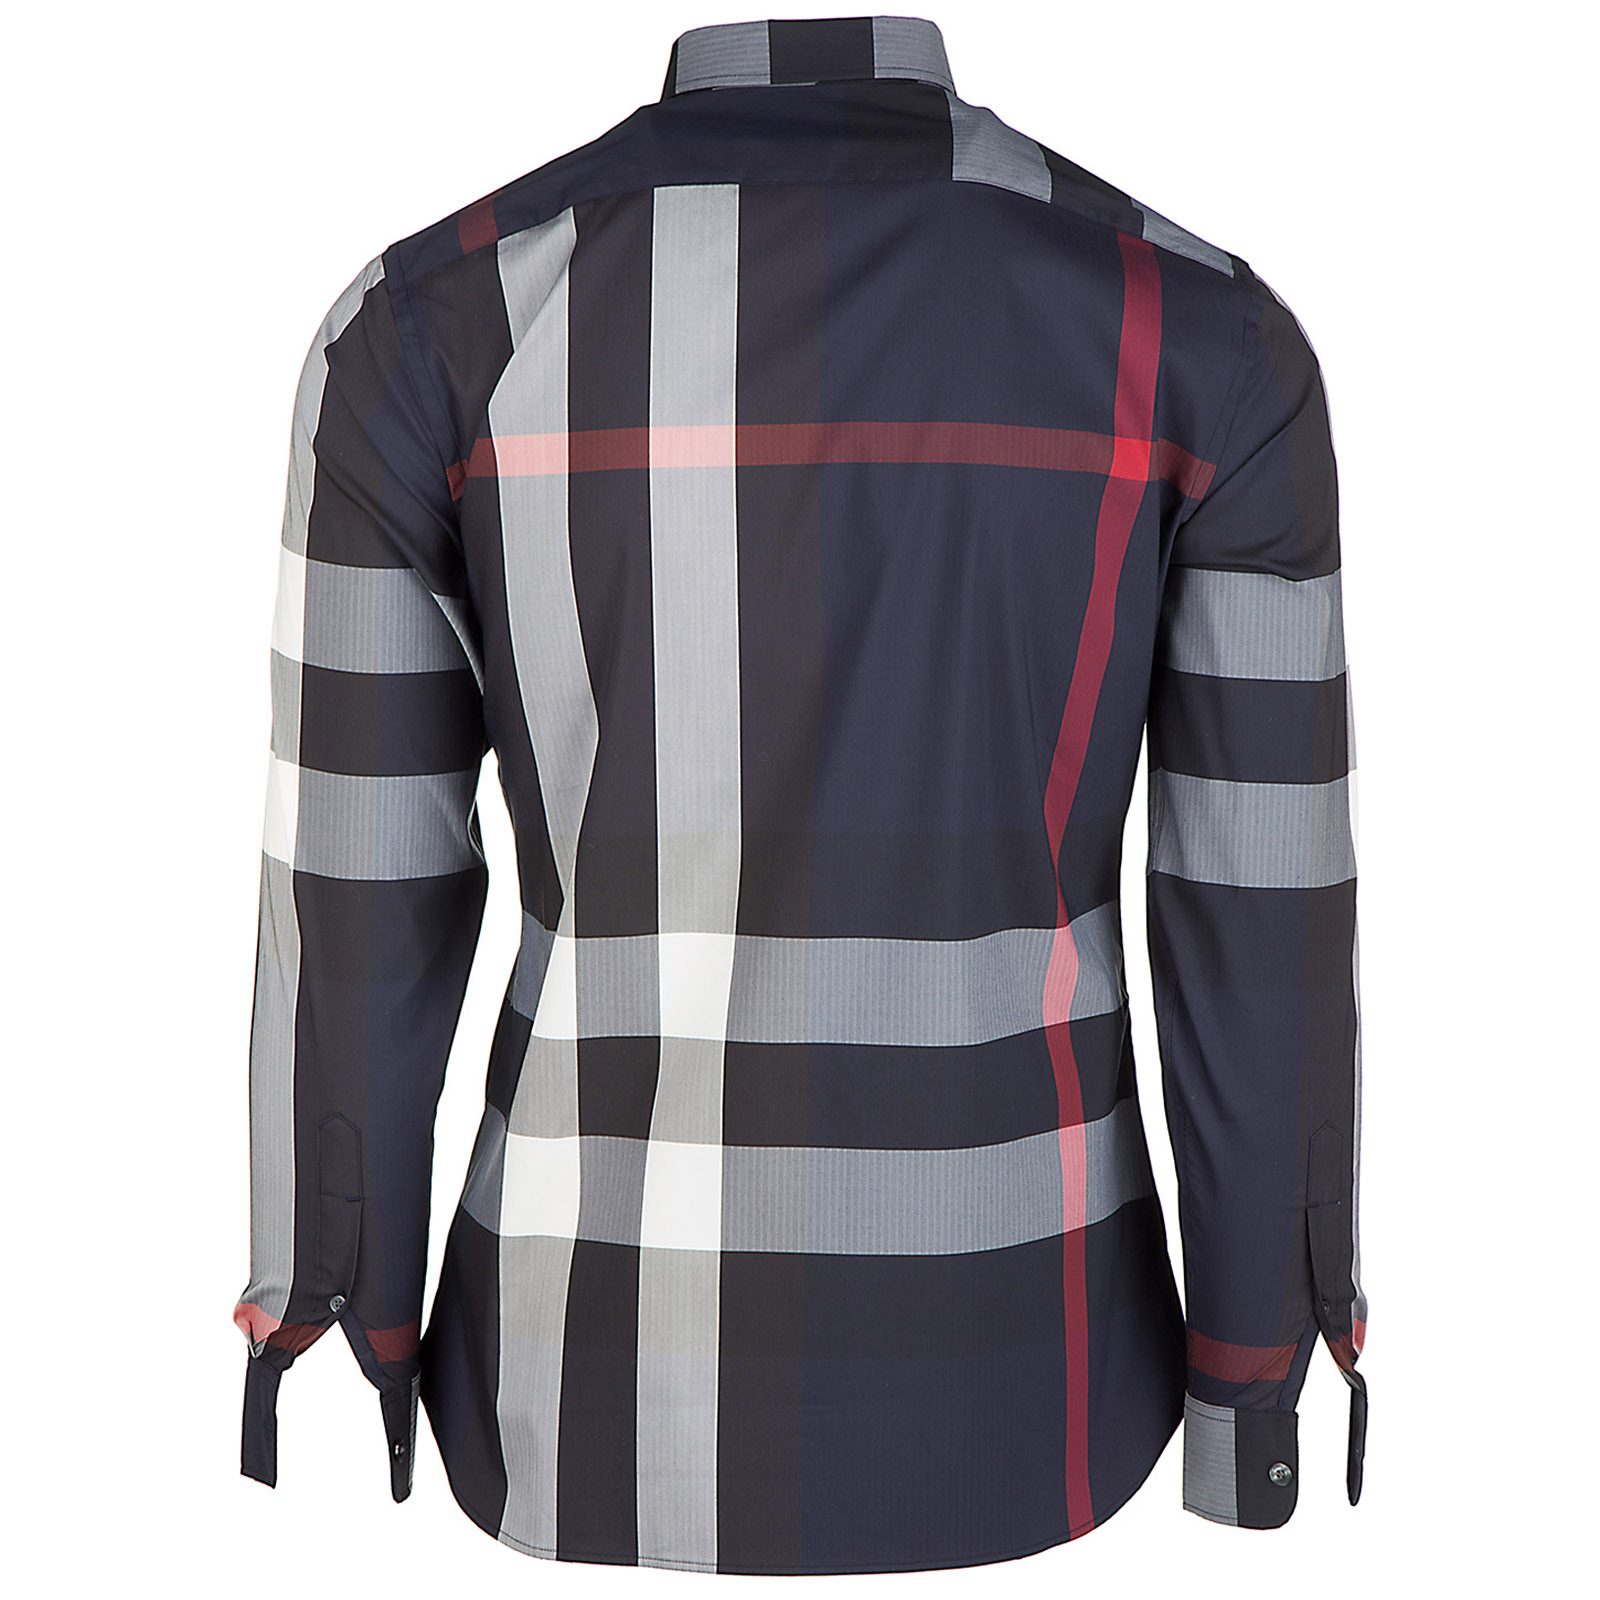 Chemise à manches longues homme thornaby Chemise à manches longues homme  thornaby 3e4421a40501